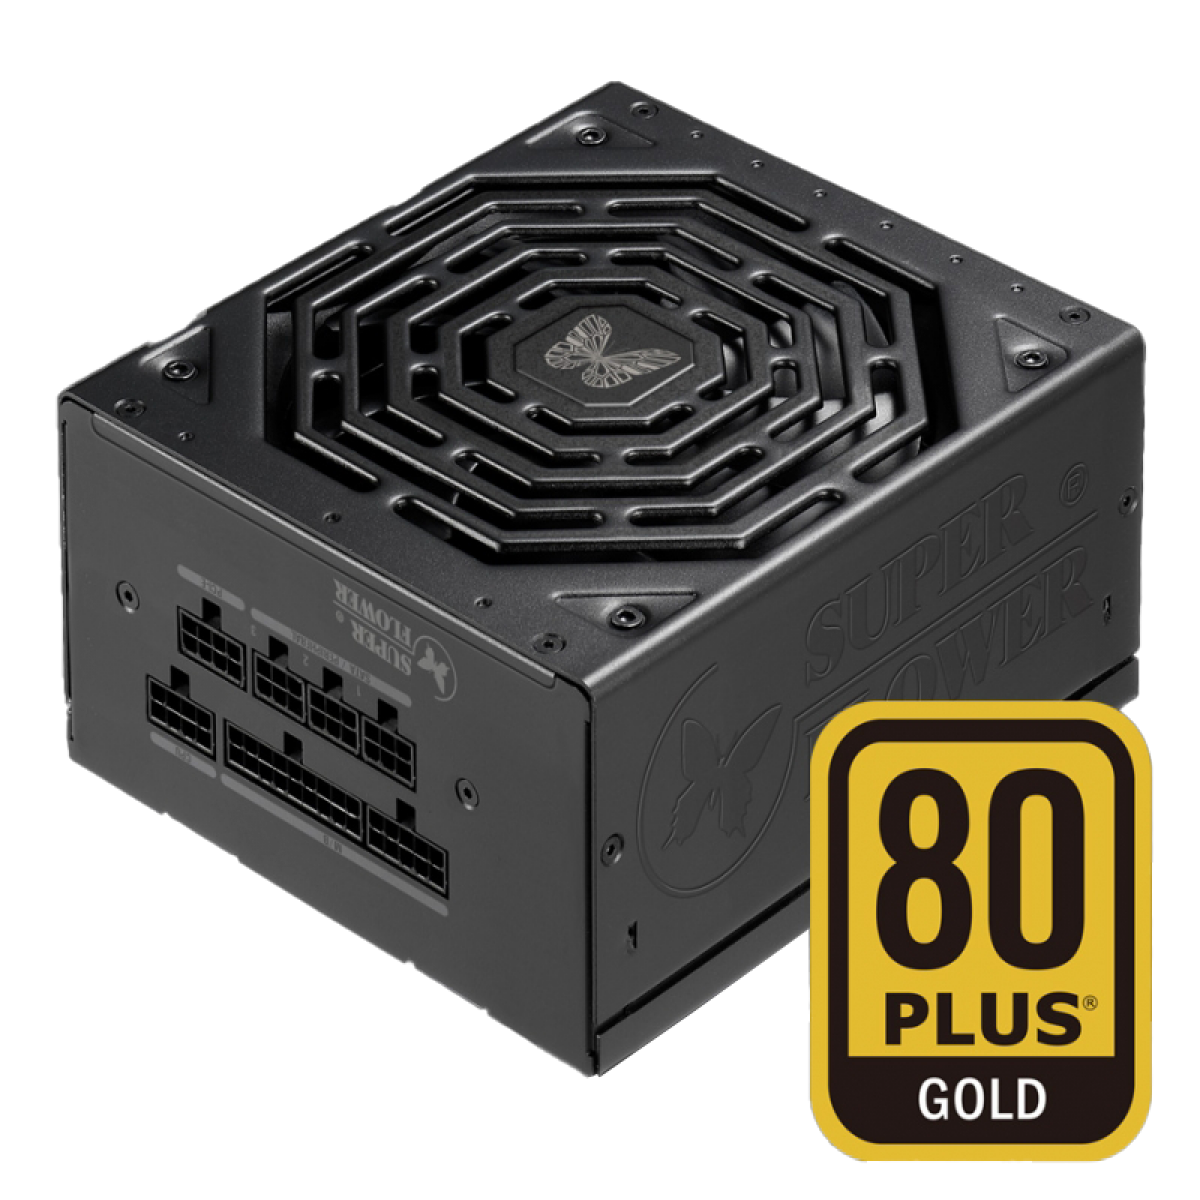 Fonte Super Flower LEADEX III 550W, 80 Plus Gold, PFC Ativo, Full Modular, SF-550F14HG